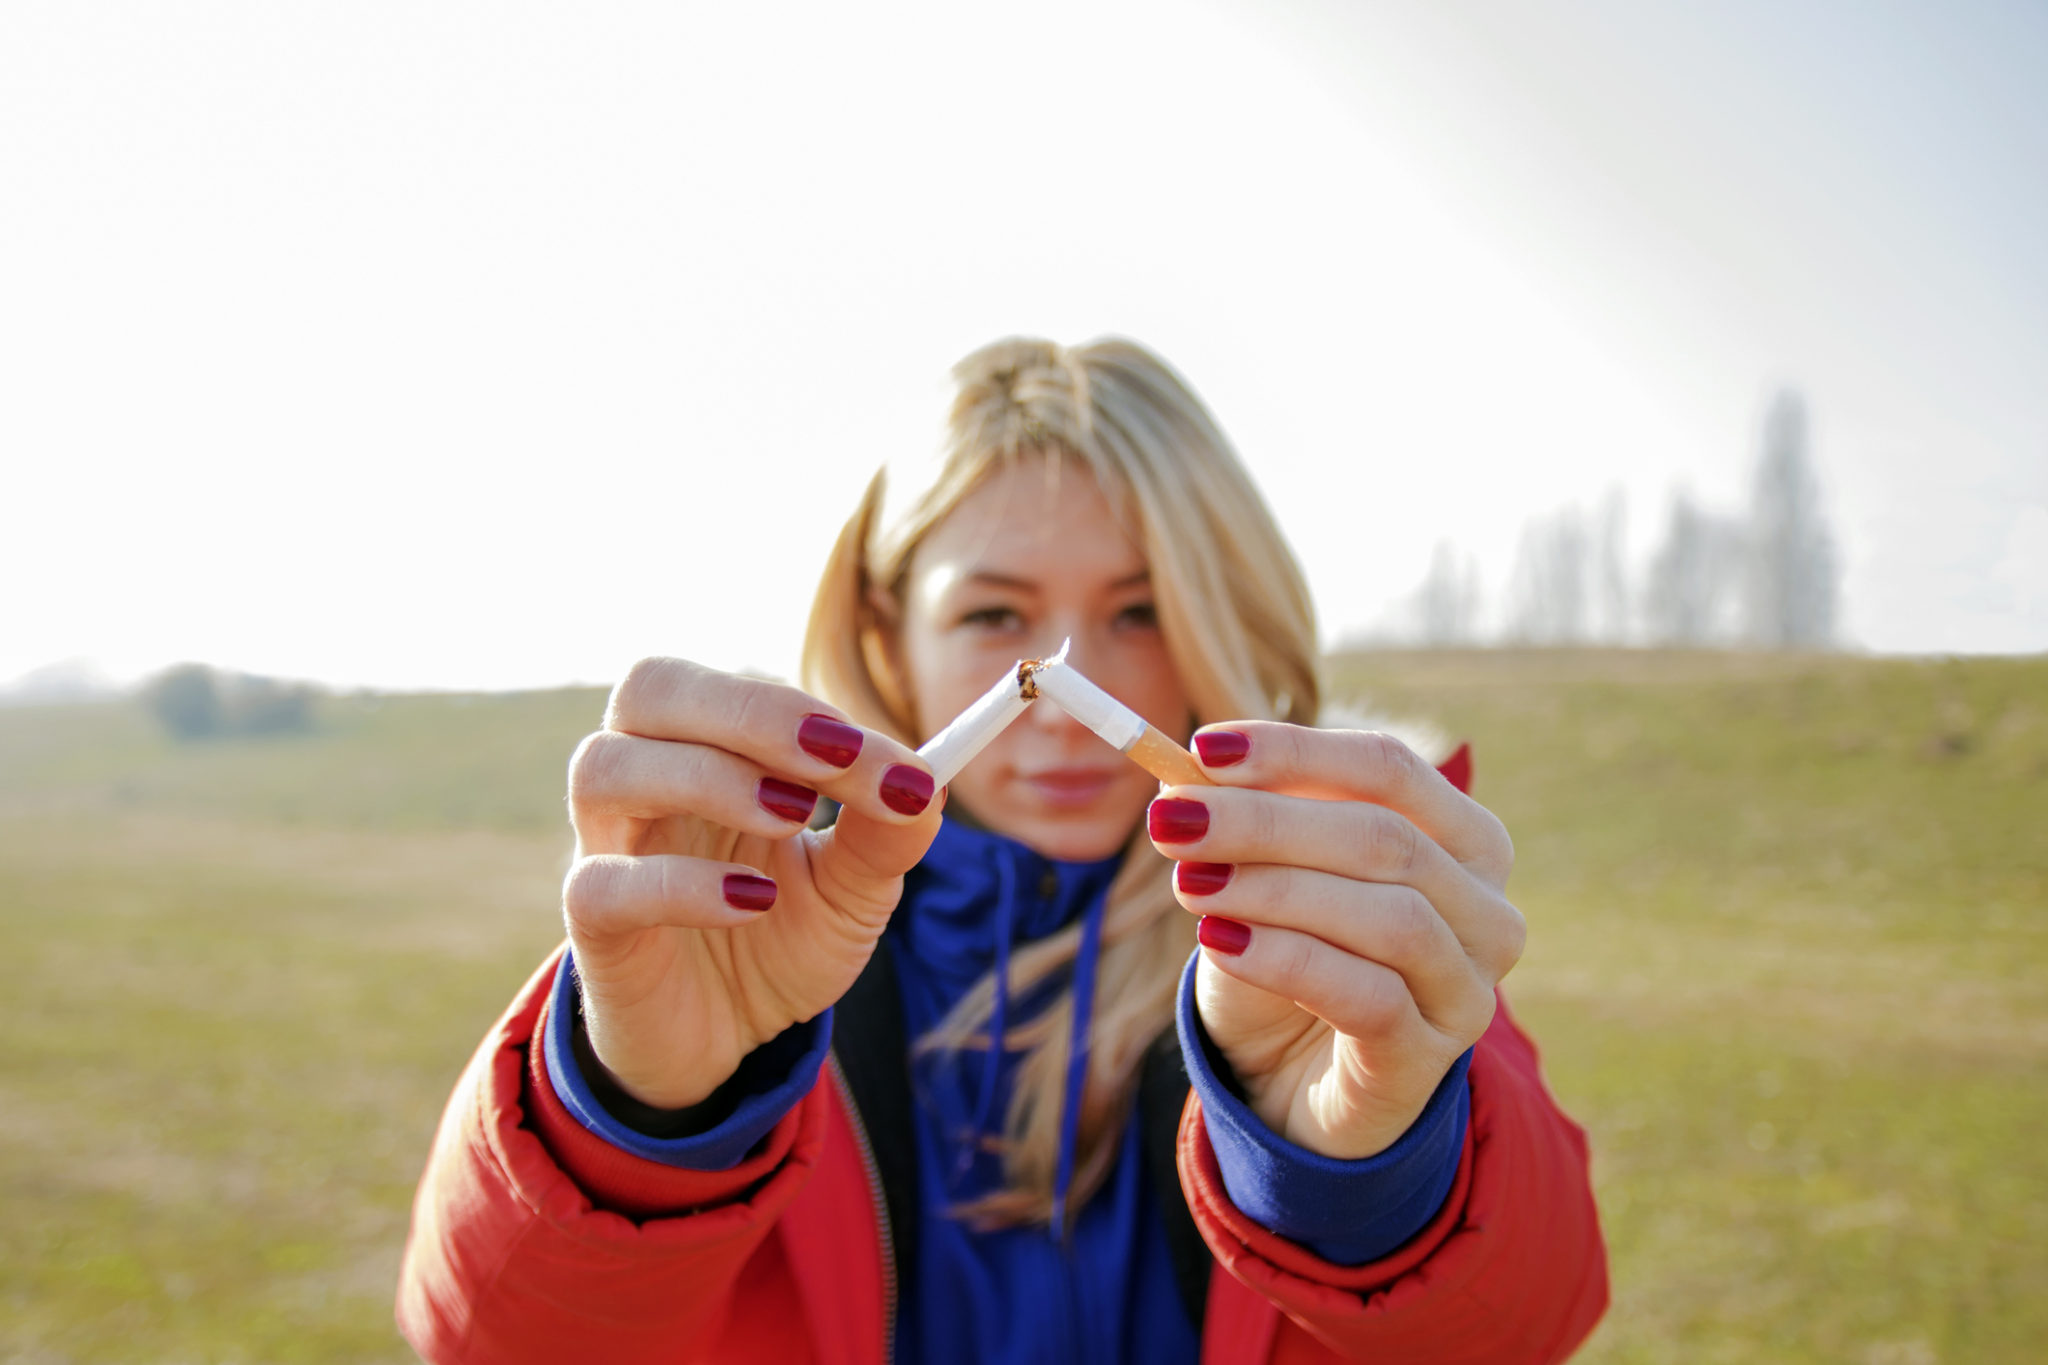 Threat of vision loss a motivator to quit smoking